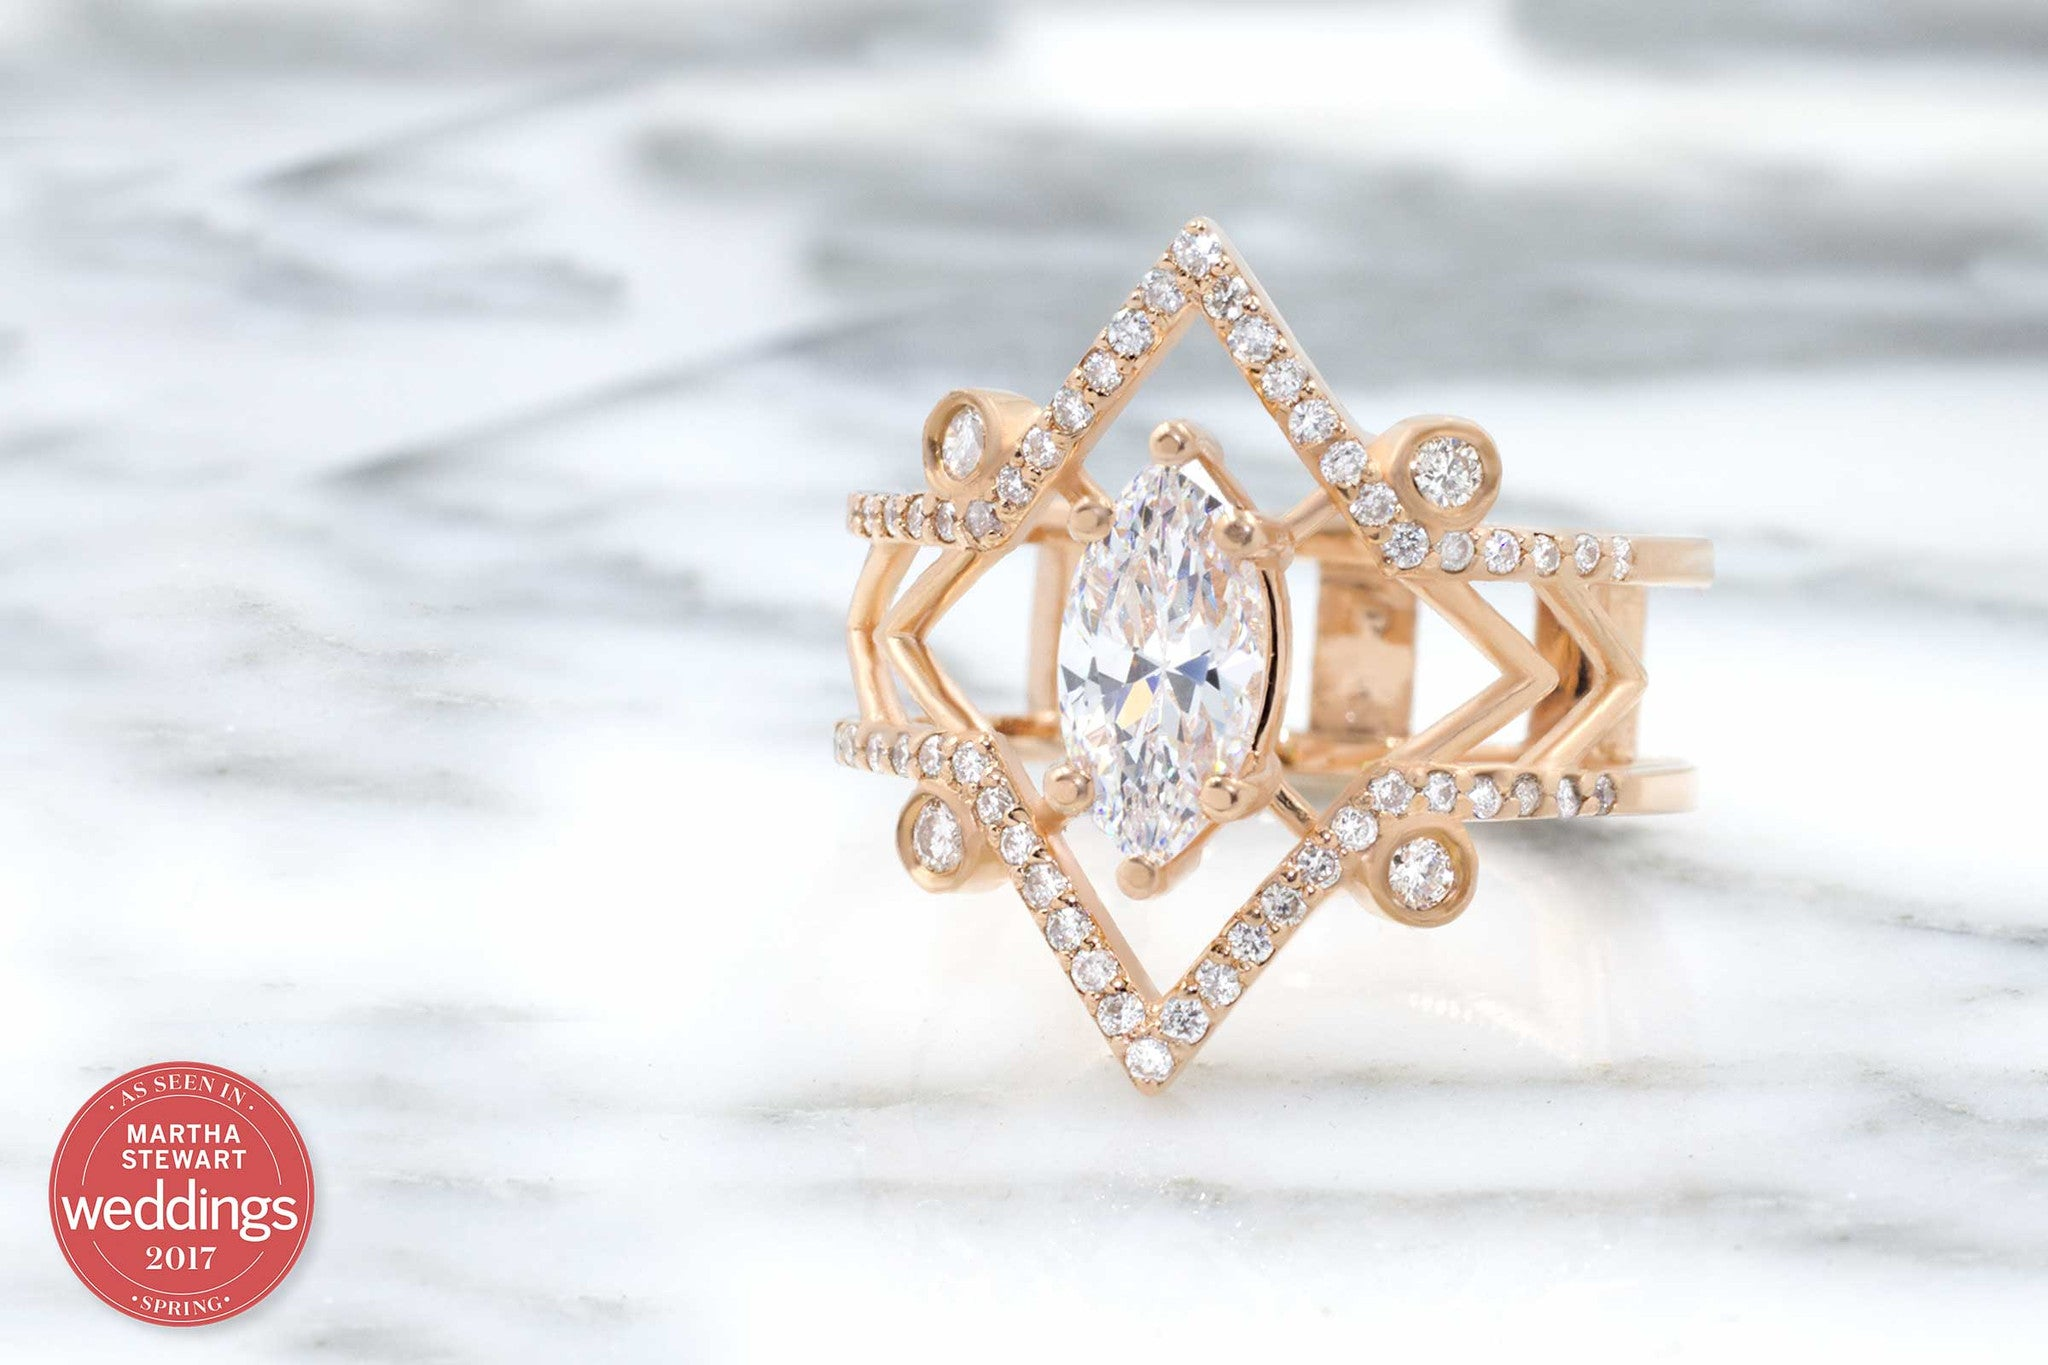 The Arrow Marquise Modern Art Deco Engagement Ring